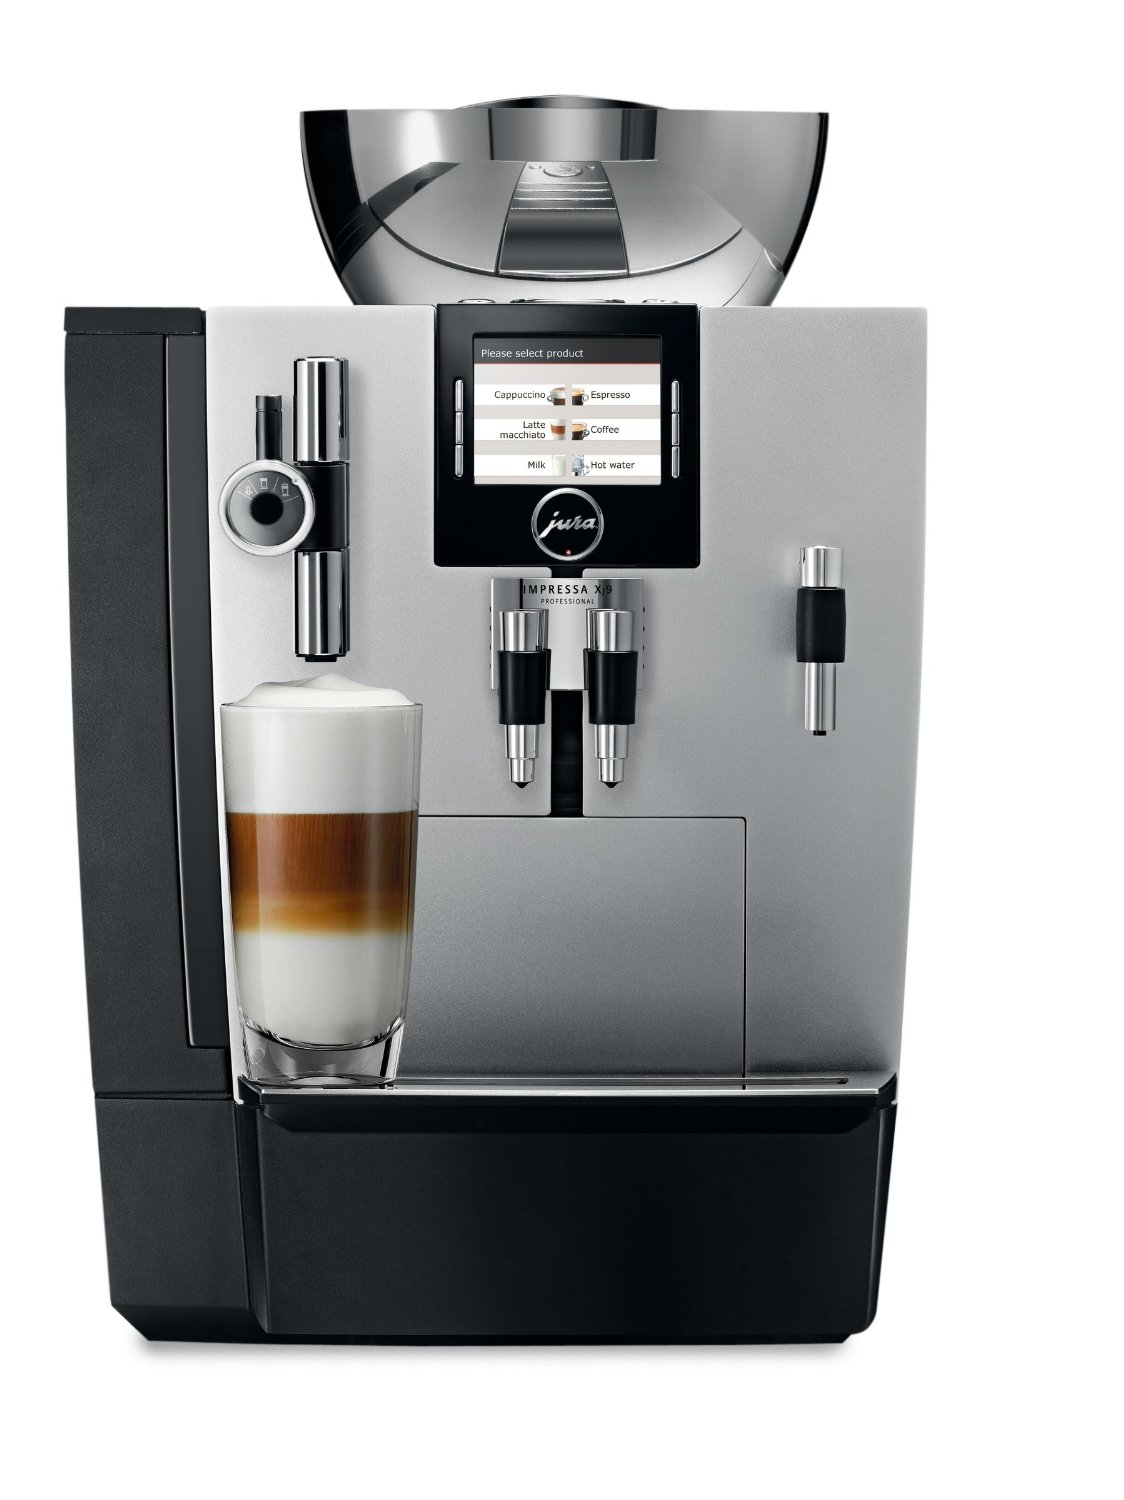 10 best commercial espresso machine reviews coffee on fleek. Black Bedroom Furniture Sets. Home Design Ideas